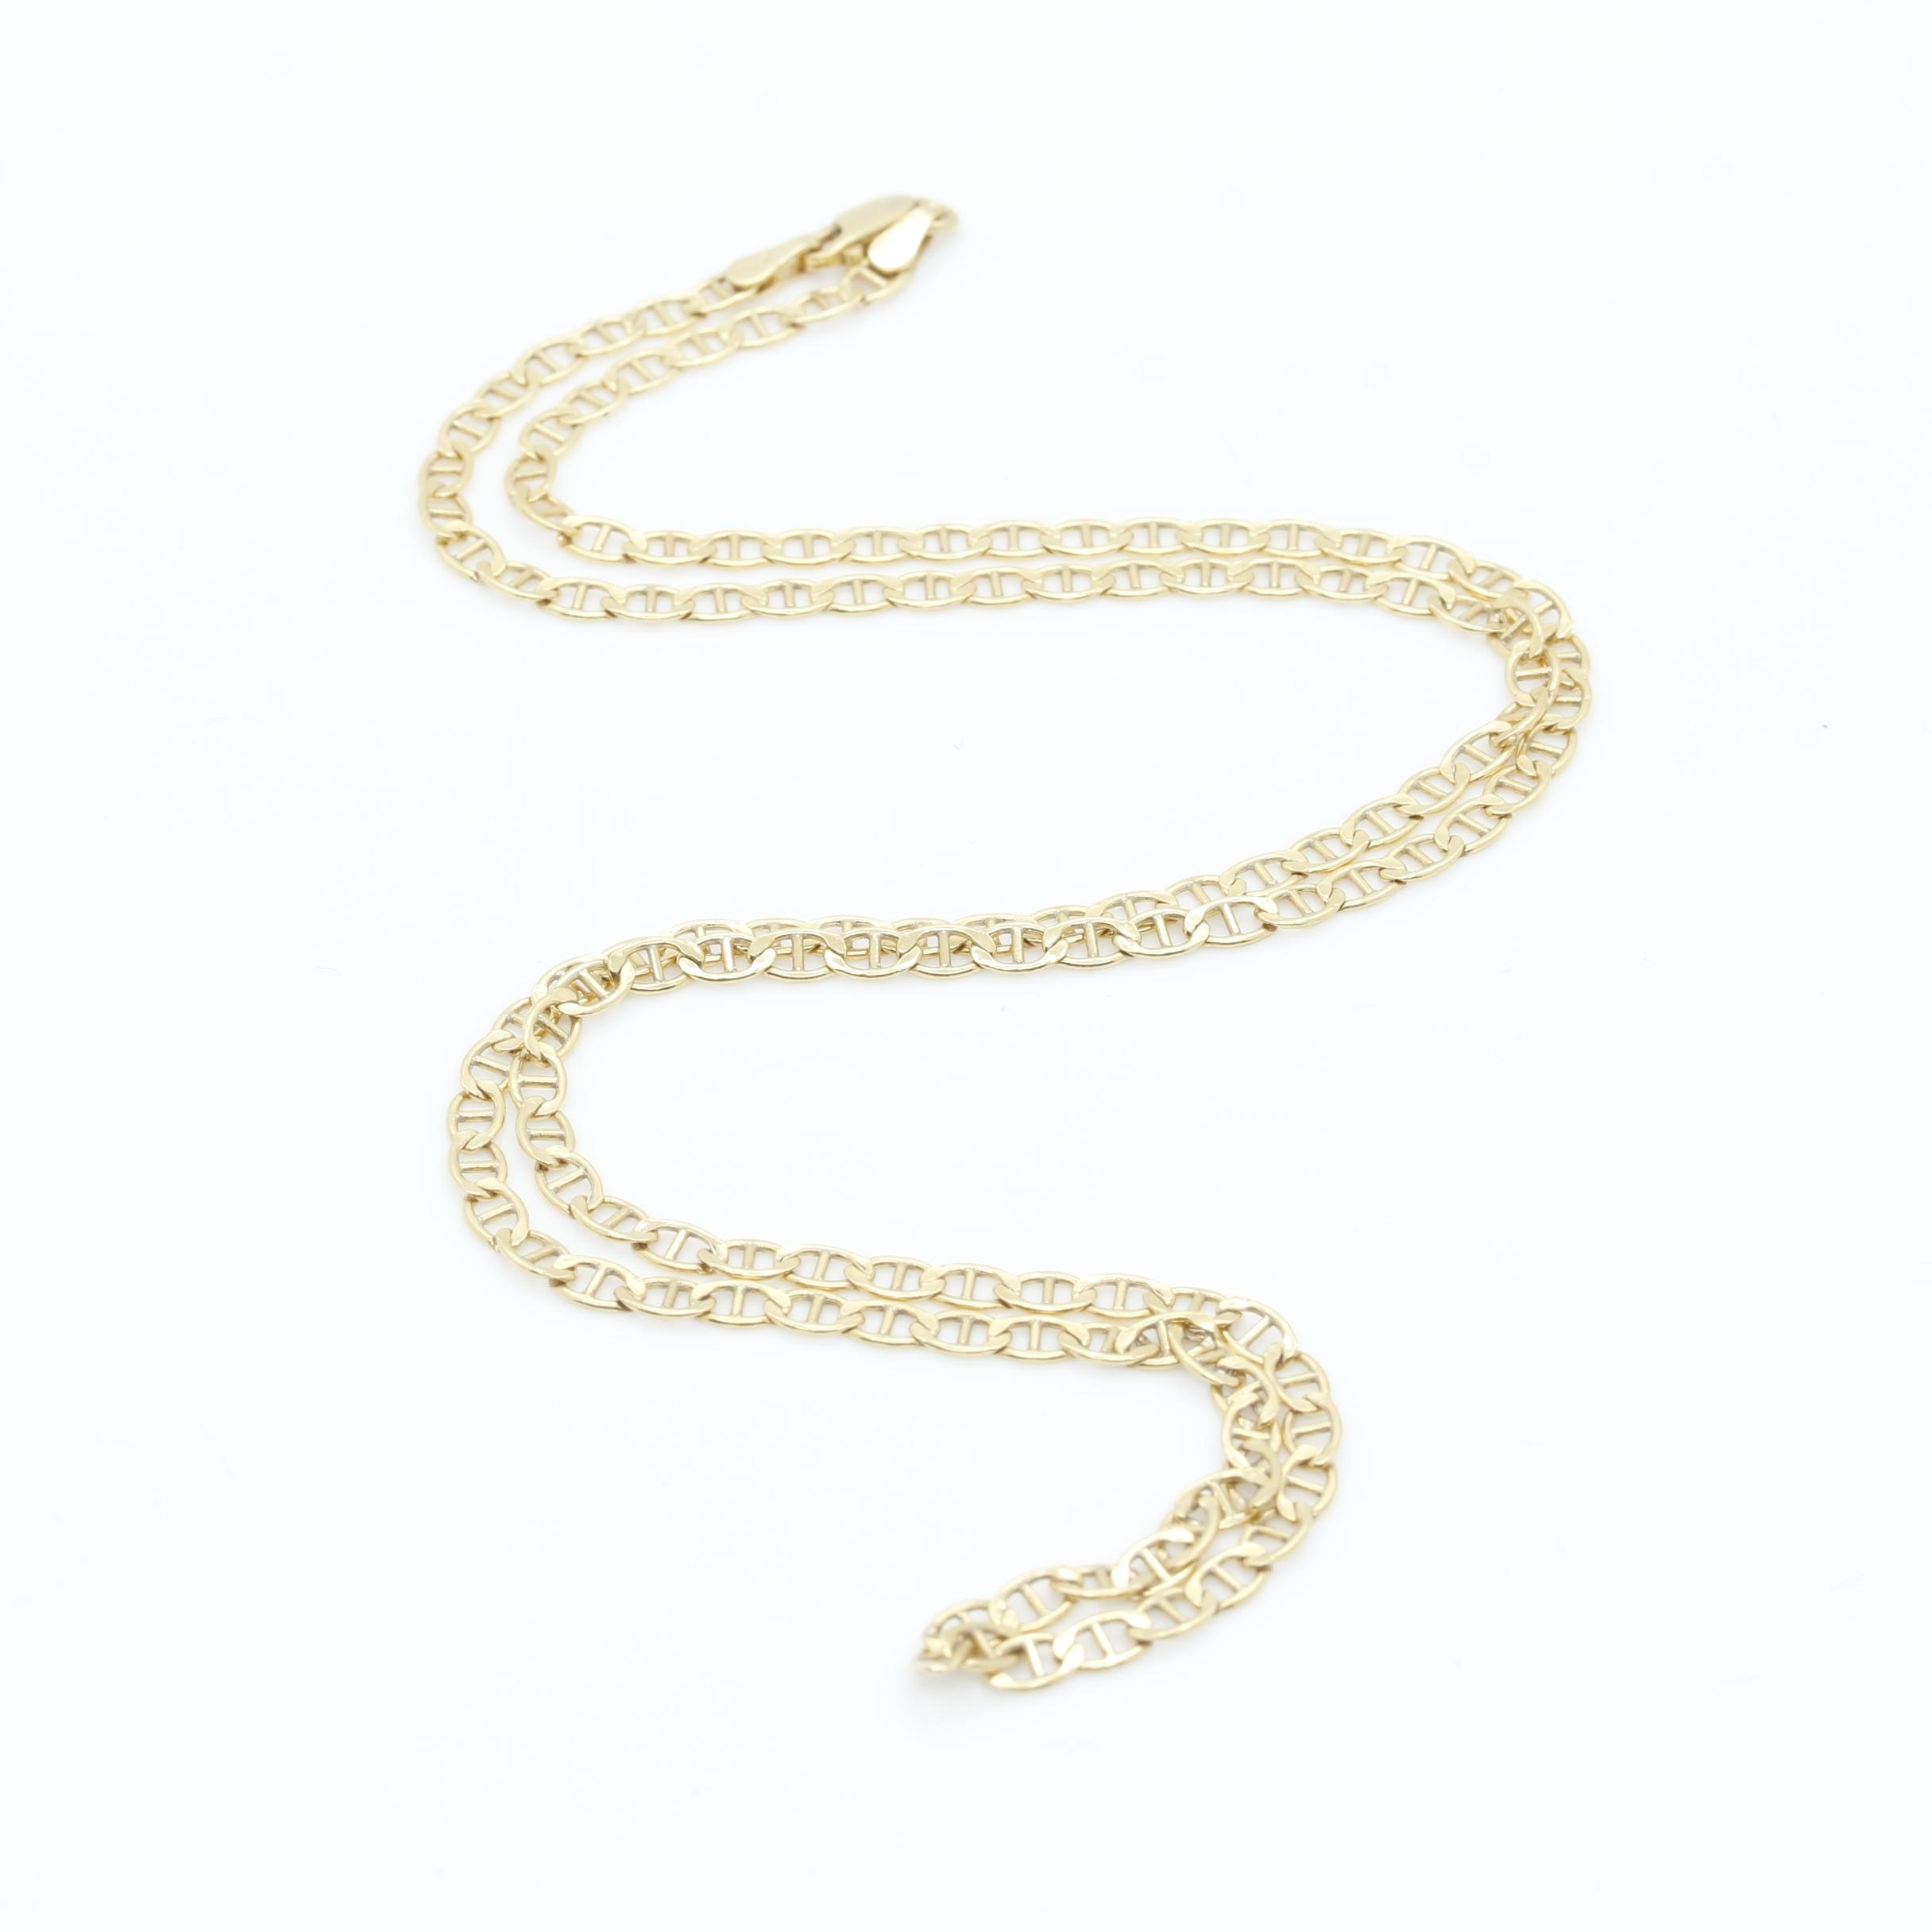 10K Yellow Gold Anchor Link Necklace